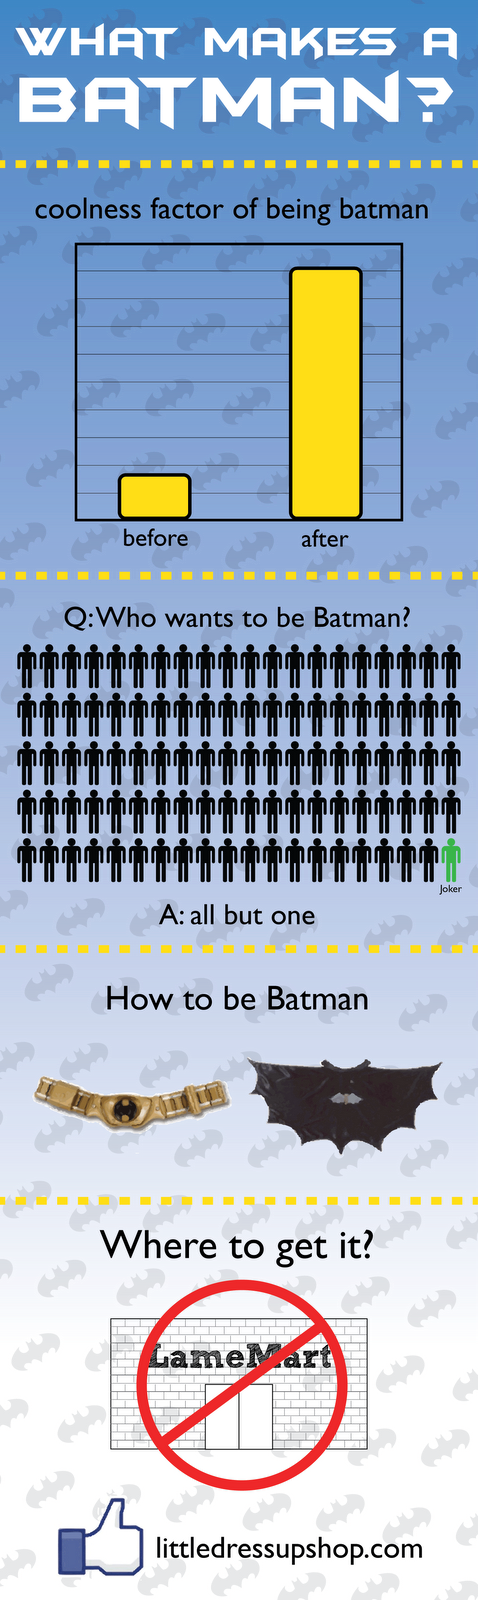 batman infograhic